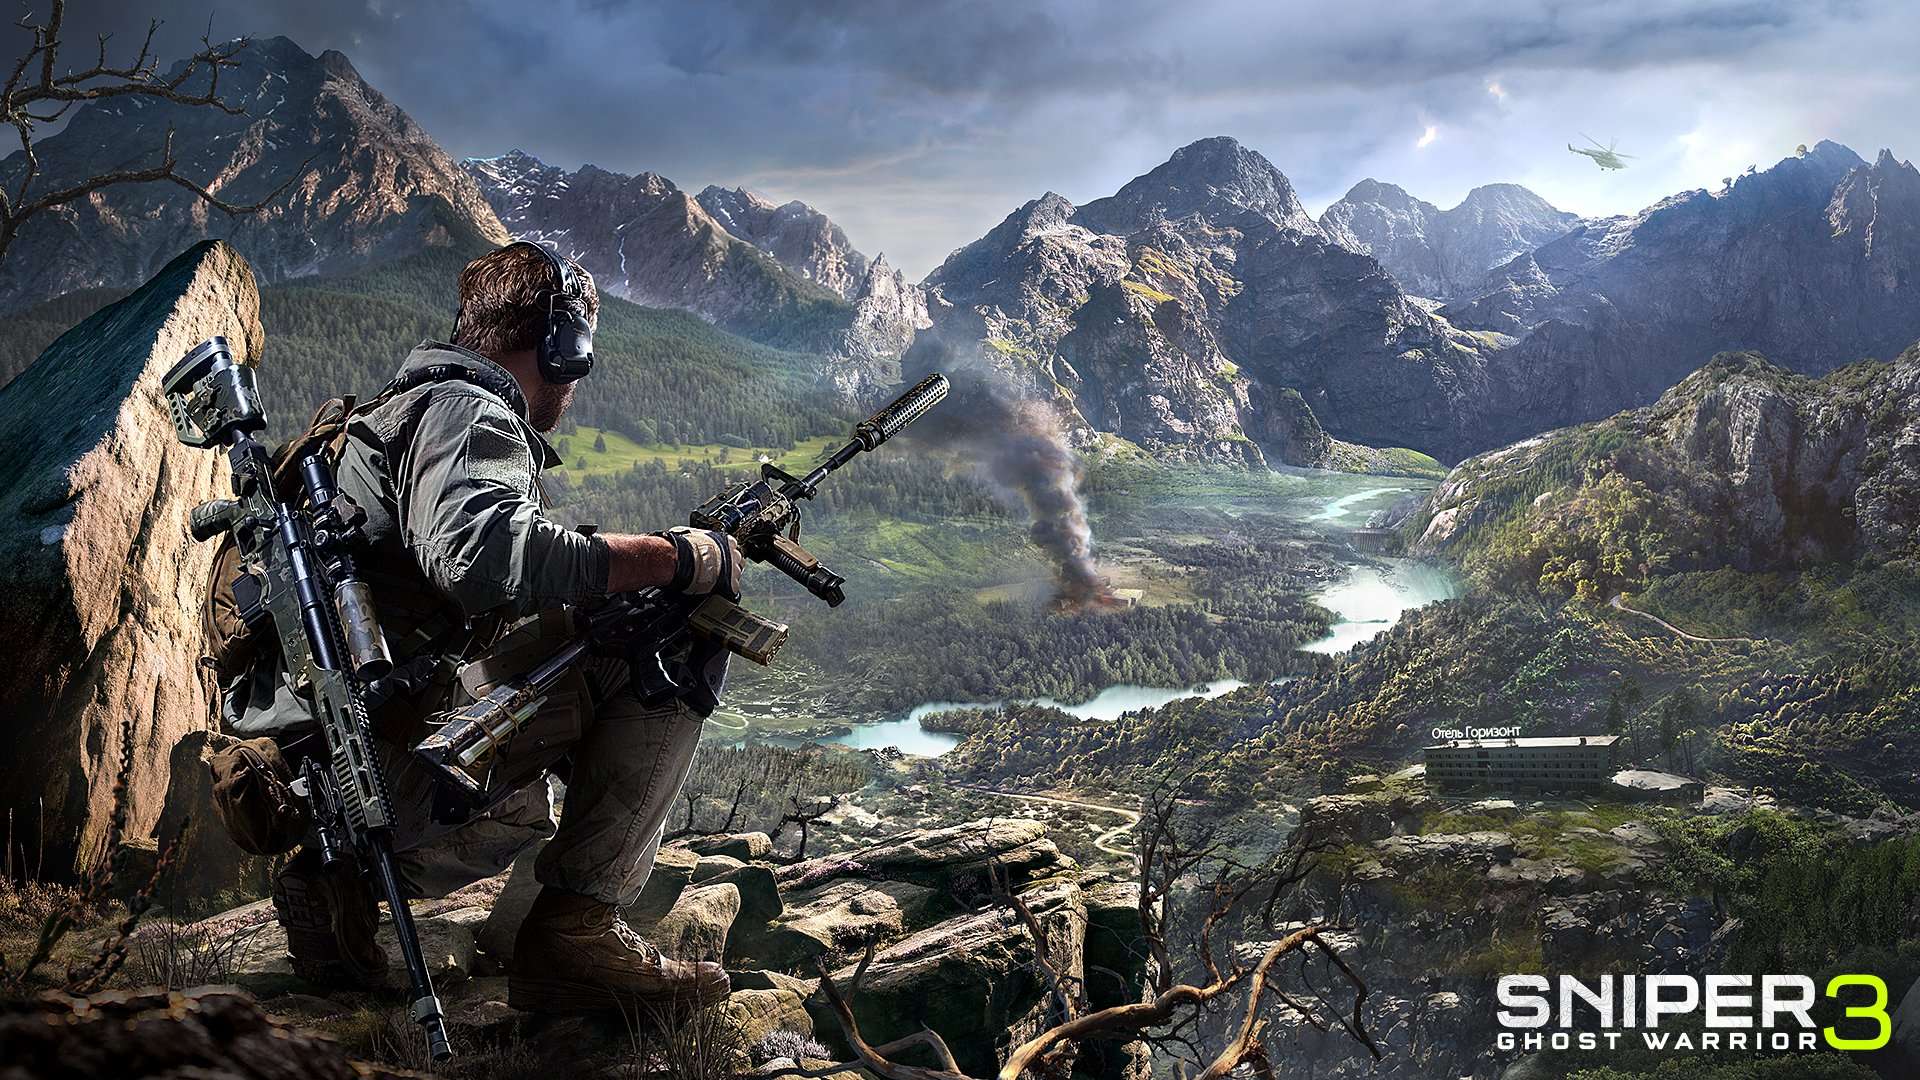 34 Sniper Ghost Warrior 3 HD Wallpapers